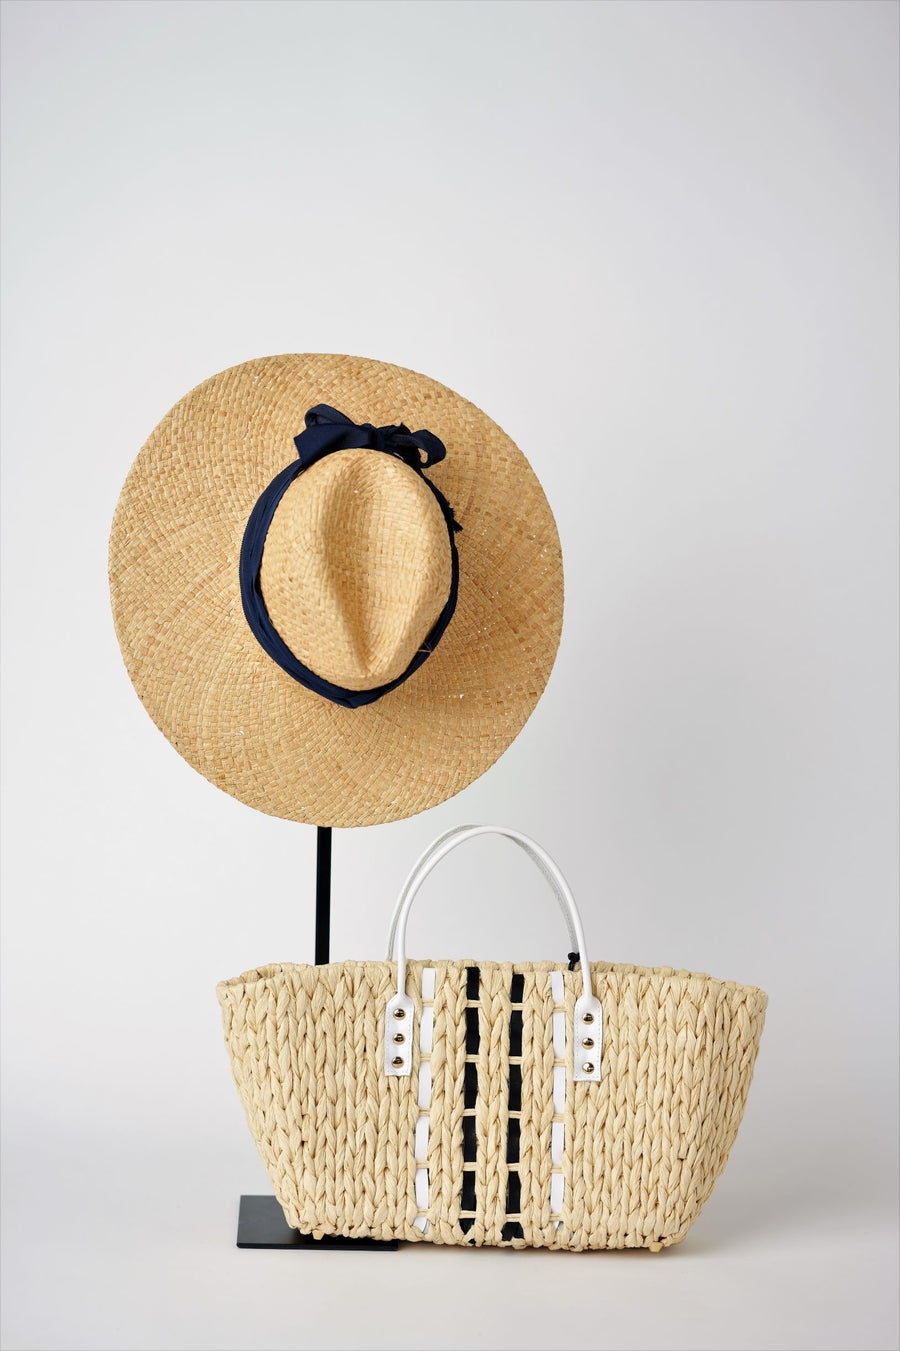 Collection of Anya & Niki straw hat and bag - the Everywhere straw panama hat with black grosgrain band and the Ione petite straw bag with leather details.